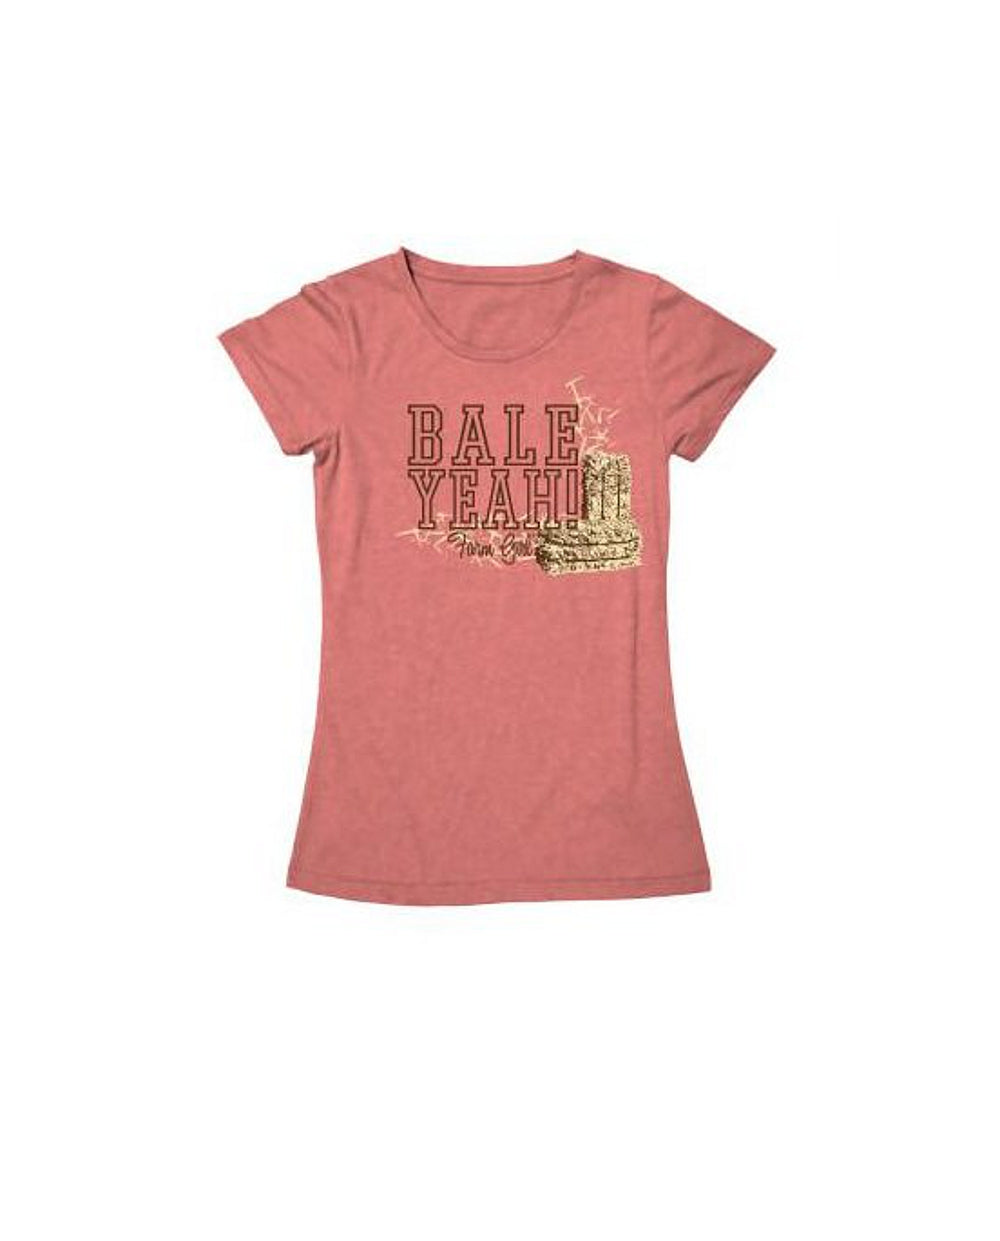 "Ladies Farm Girl ""Bale Yeah"" T-Shirt (Sherbet Pink)(Medium) - 23007224M"